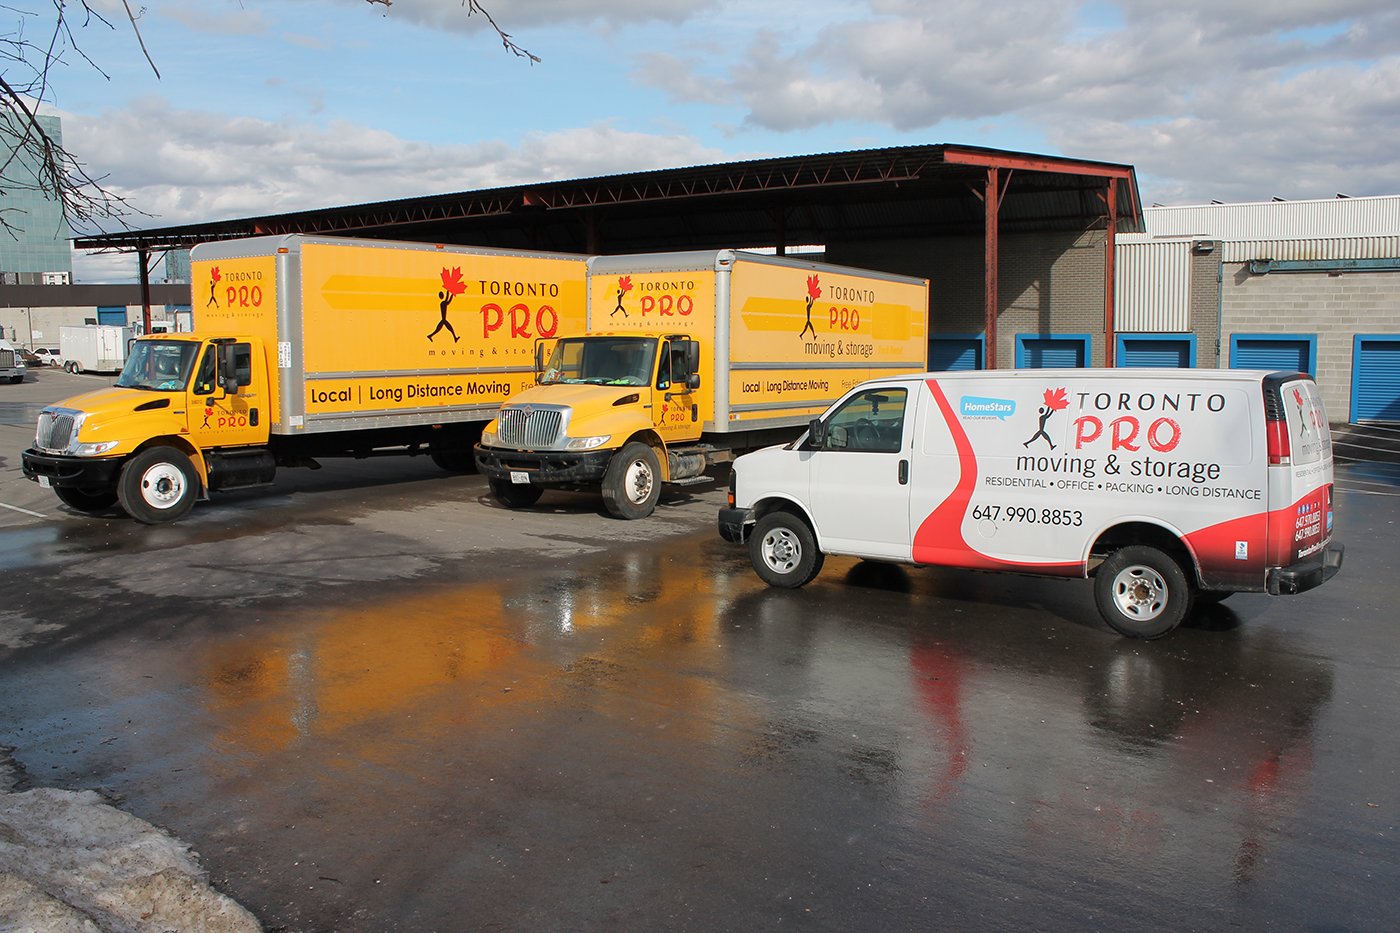 Moving Company Toronto Preparing For New Adventure